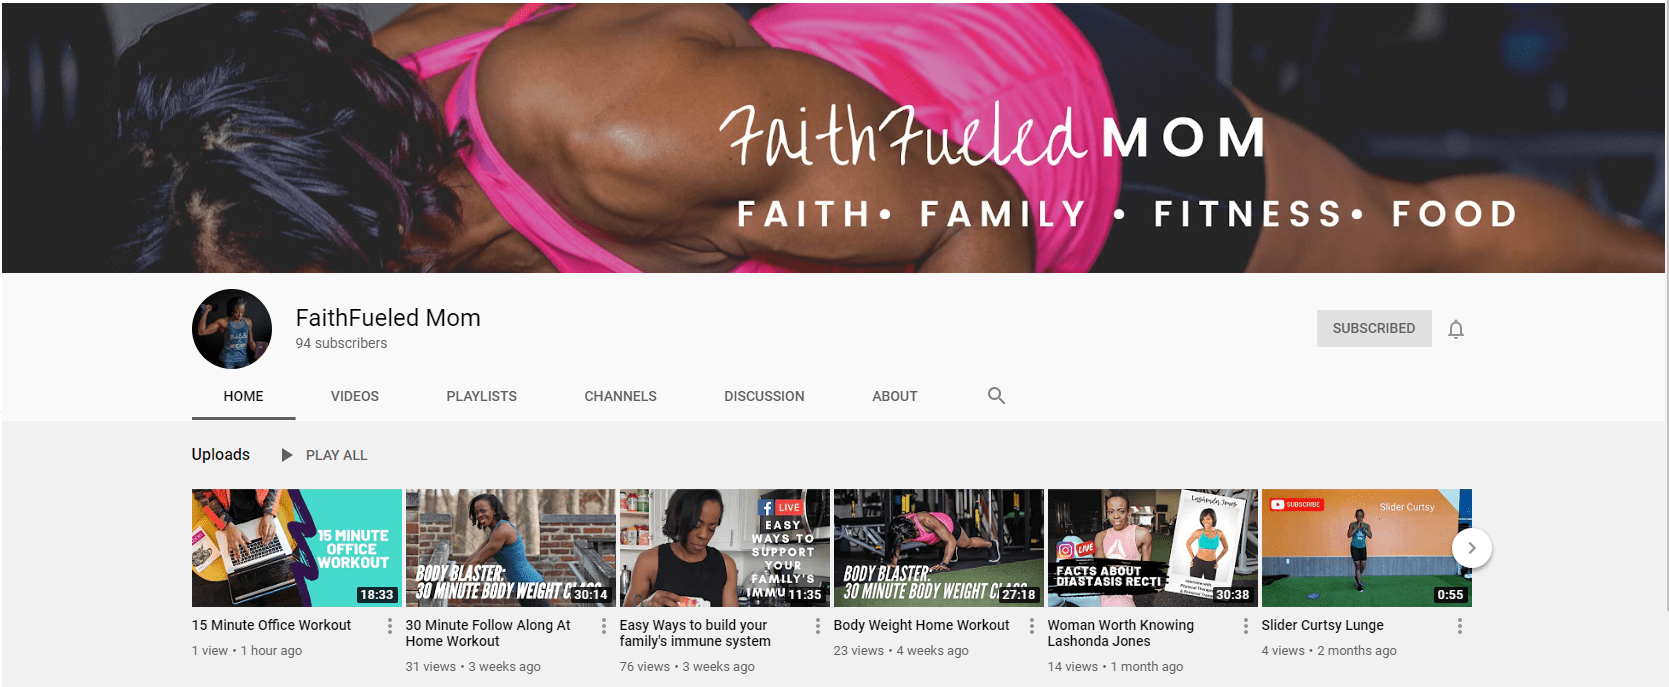 faithfueled mom on youtube influential black voices